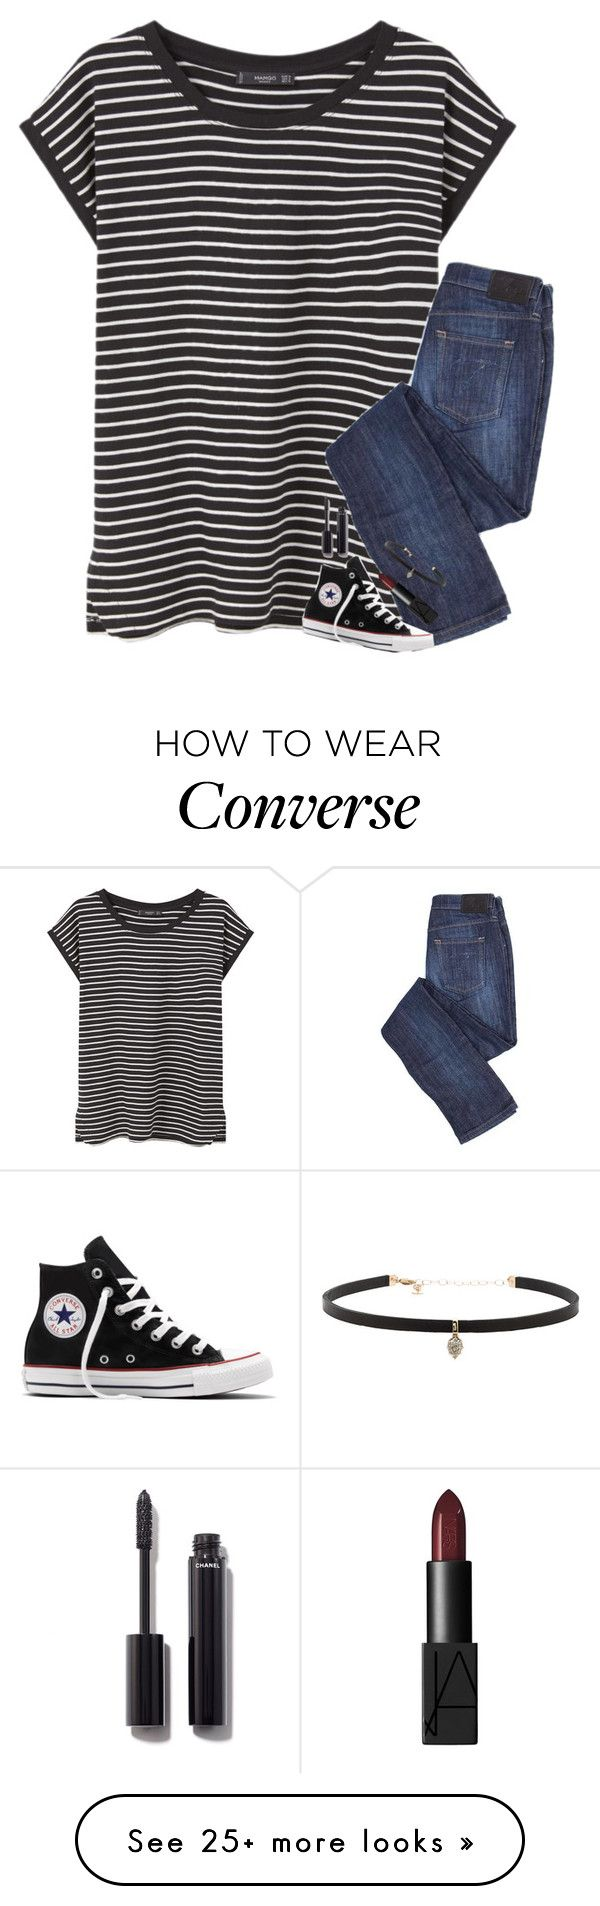 """@ emergency room"" by pineapple5415 on Polyvore featuring MANGO, Converse, Chanel, NARS Cosmetics and Carbon & Hyde"